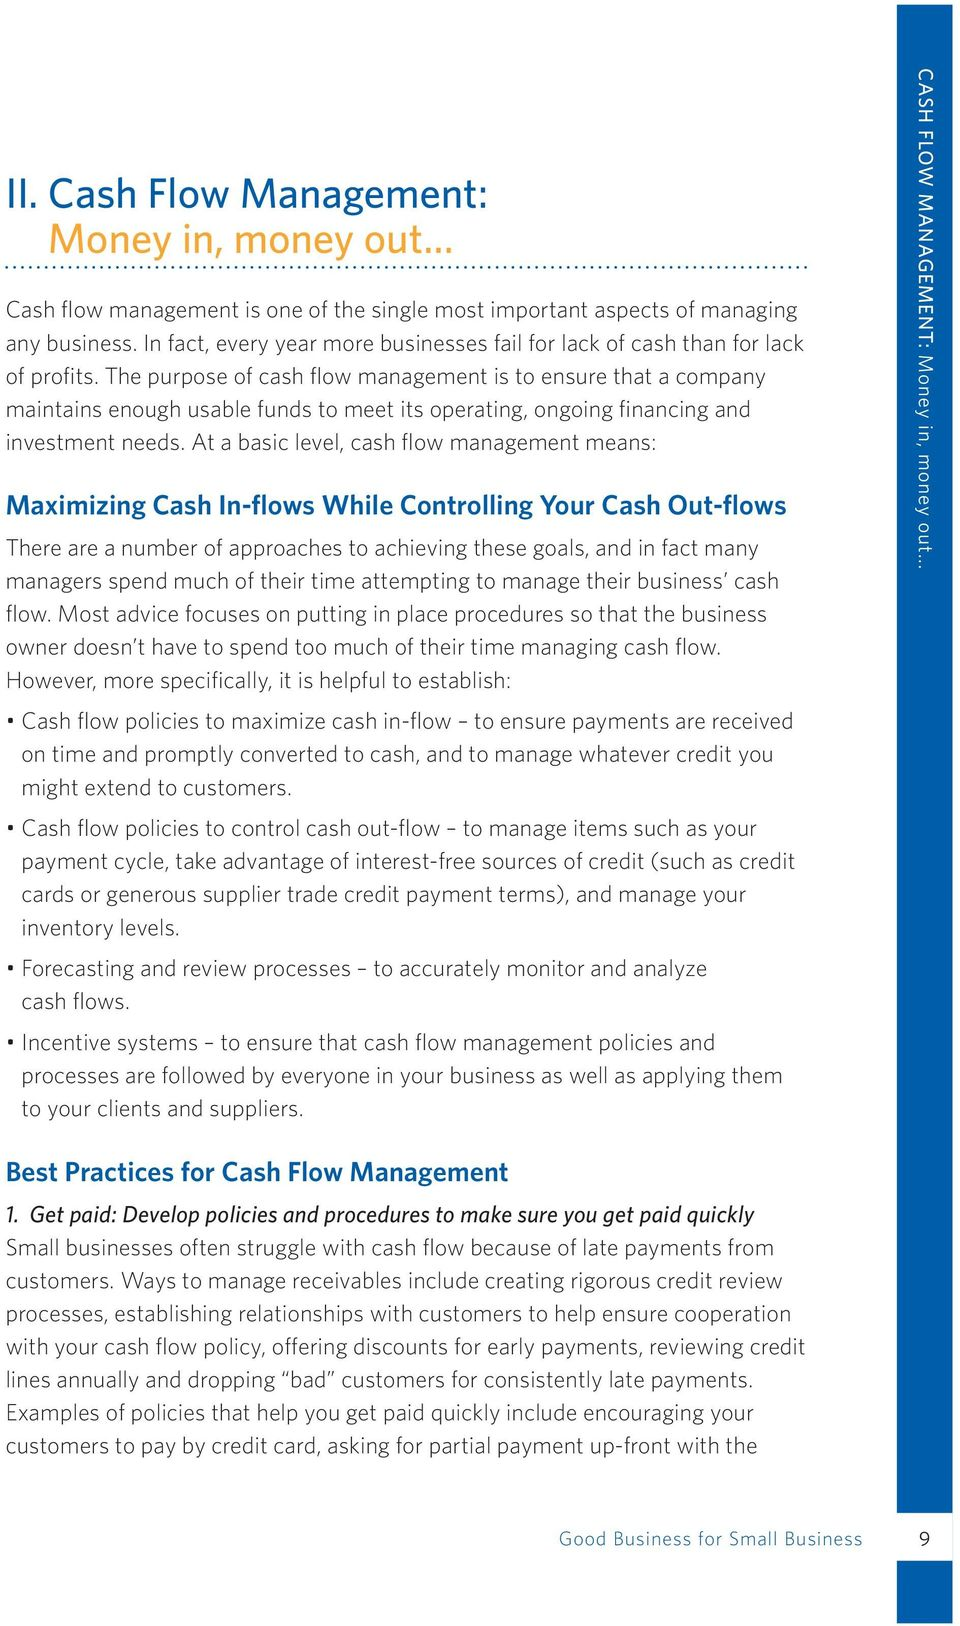 The purpose of cash flow management is to ensure that a company maintains enough usable funds to meet its operating, ongoing financing and investment needs.